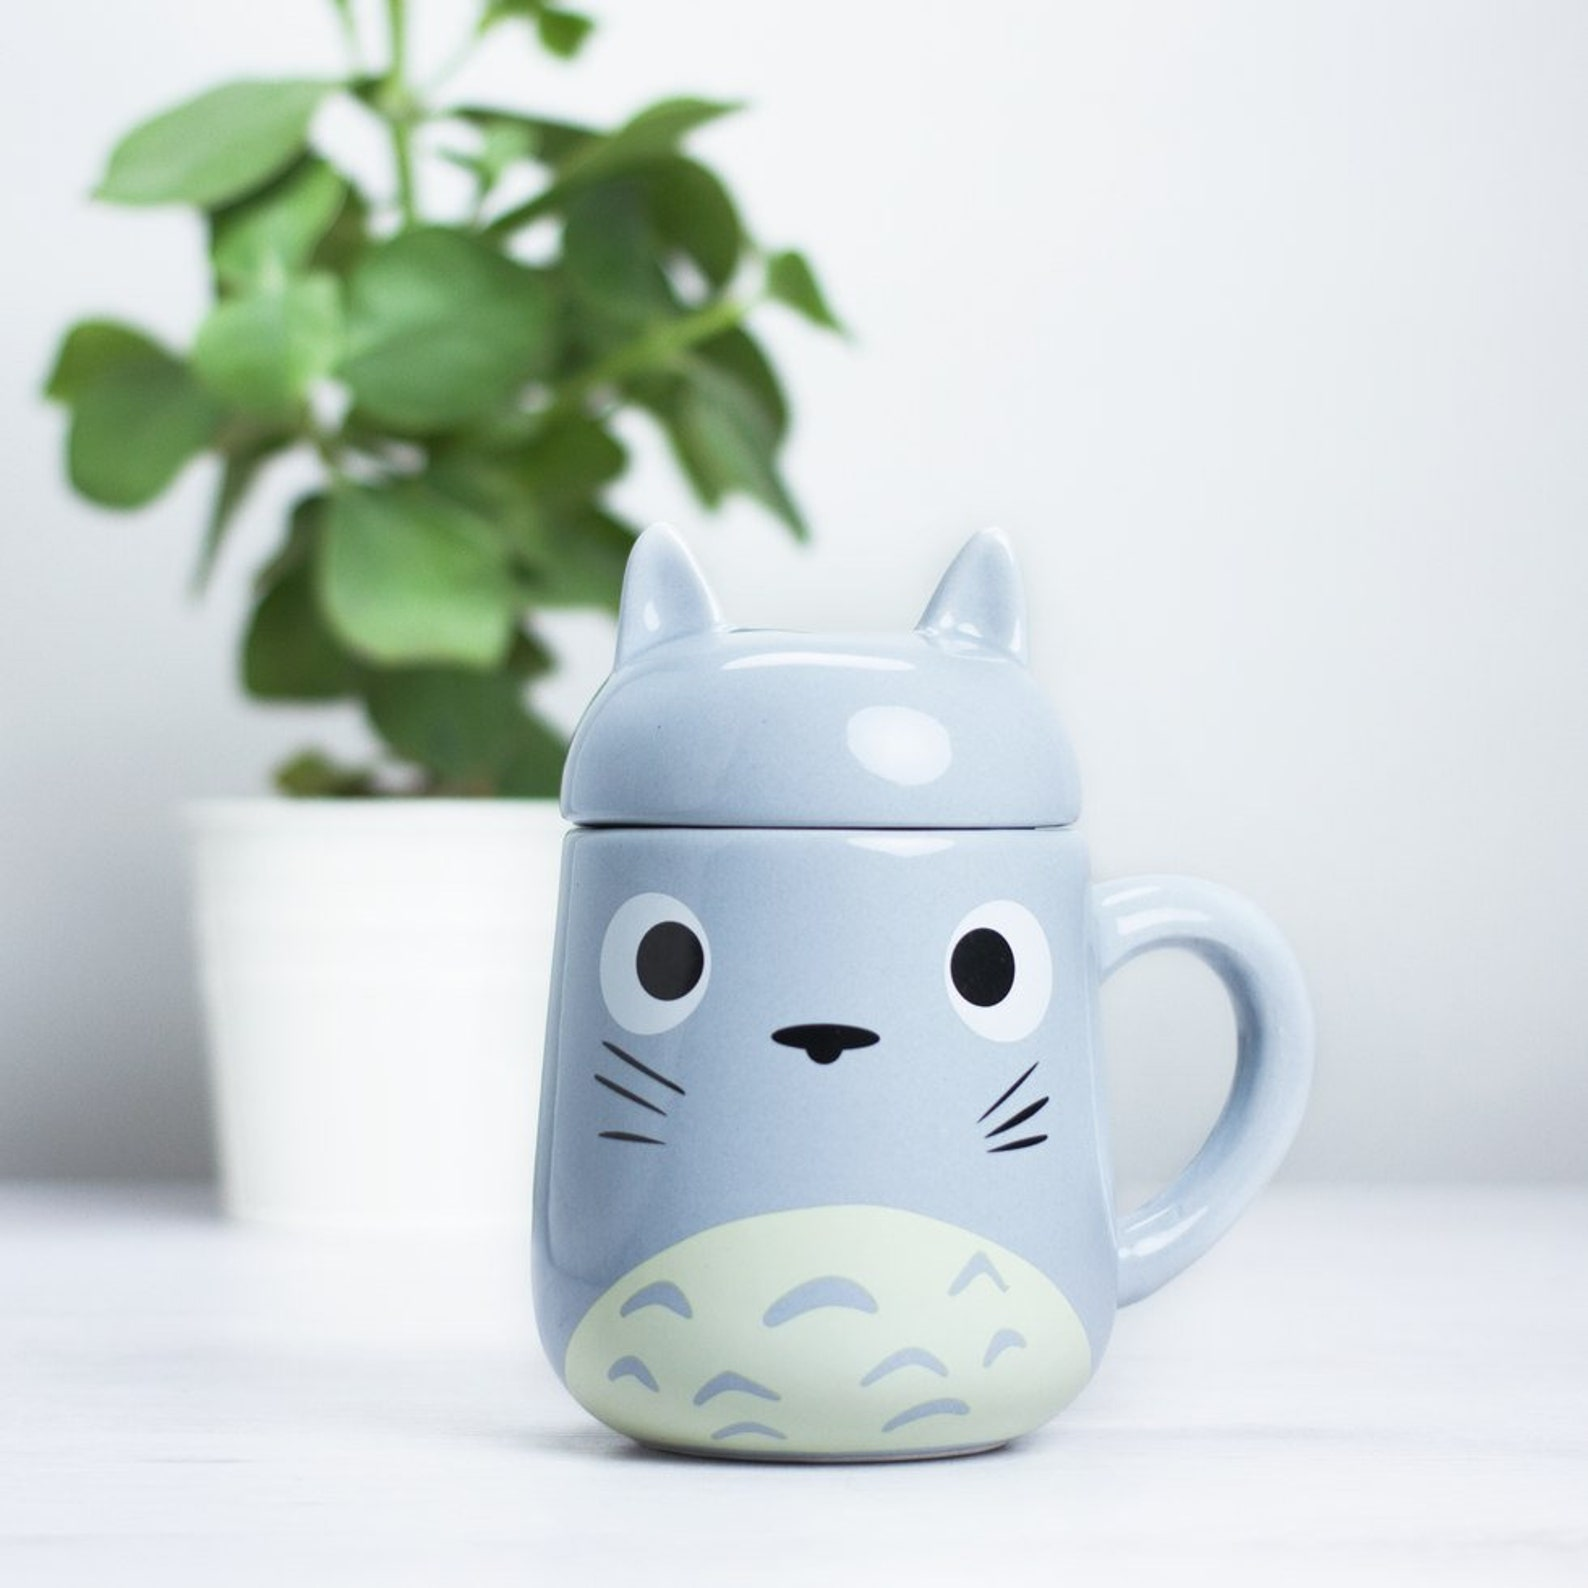 My Neighbour Totoro Mug - The Original Coffee Tea Mug